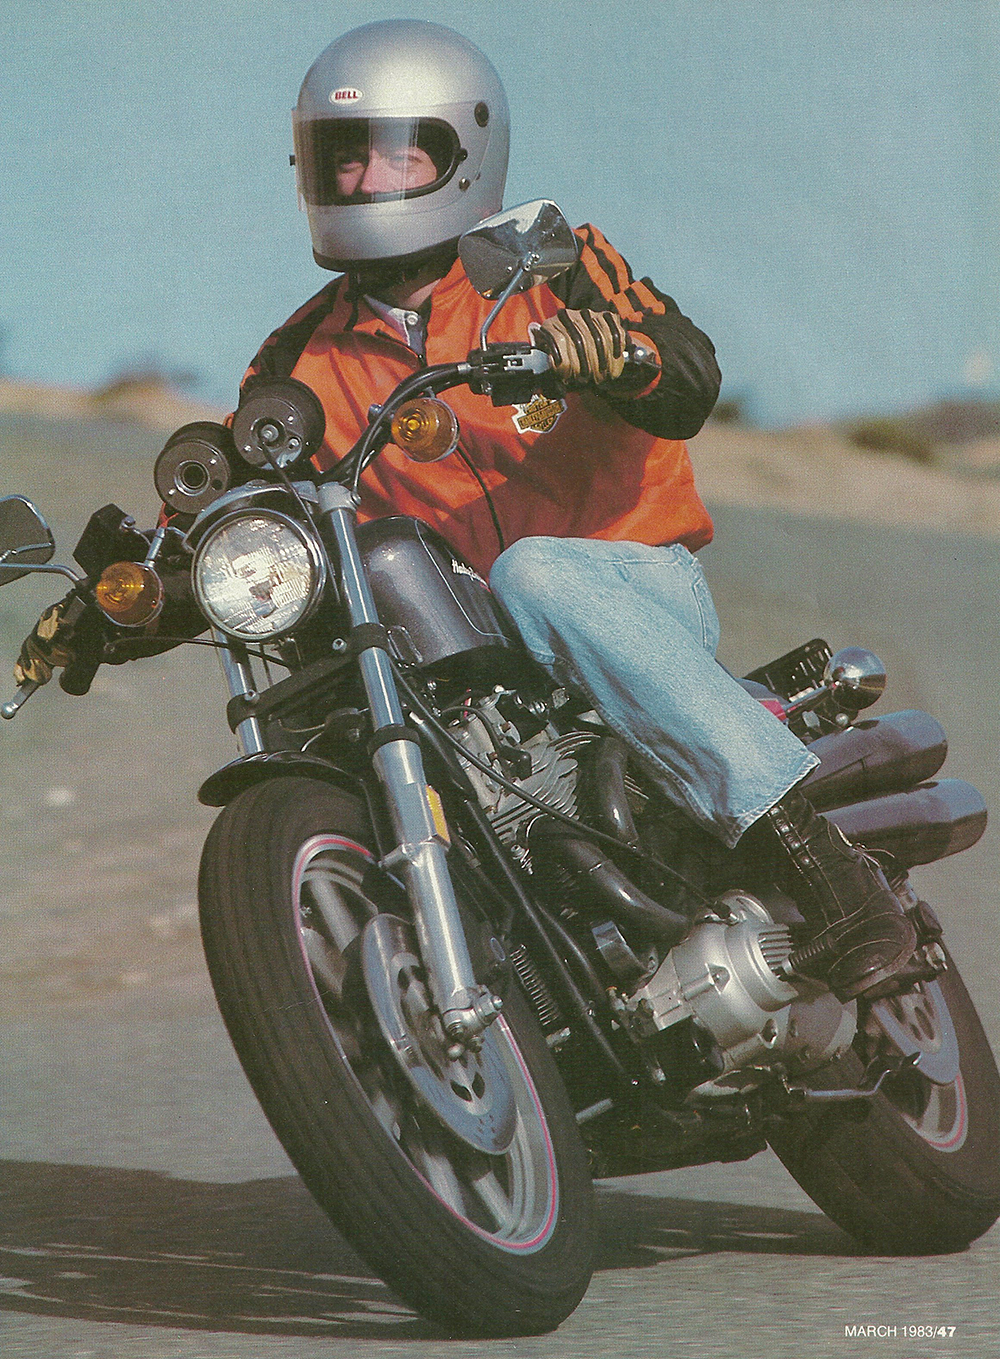 1983 Harley-Davidson XR1000 road test 02.jpg